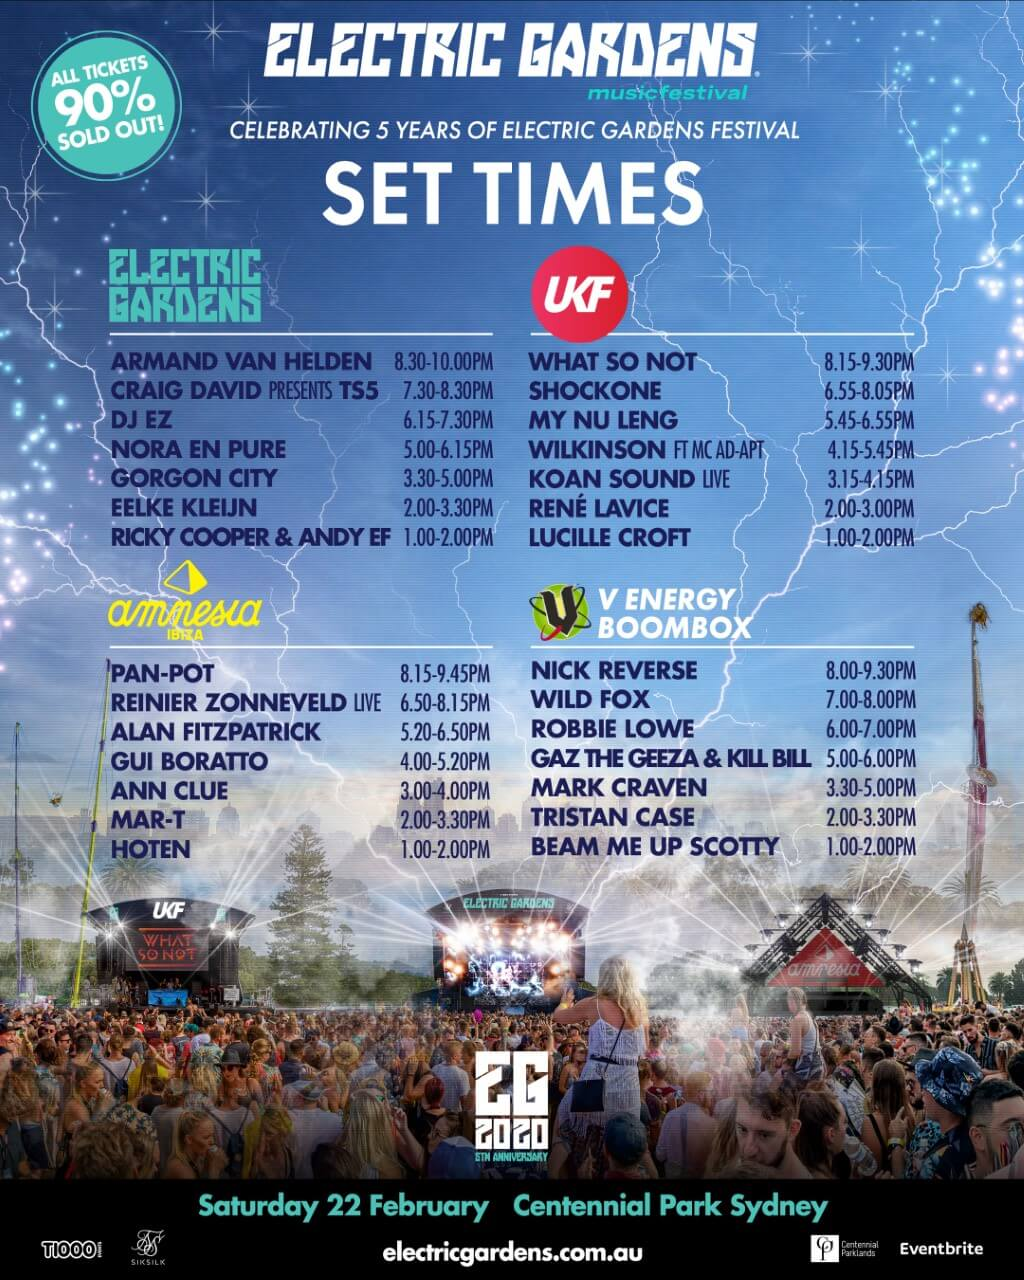 electric-gardens-set-times-2020-poster-oz-edm